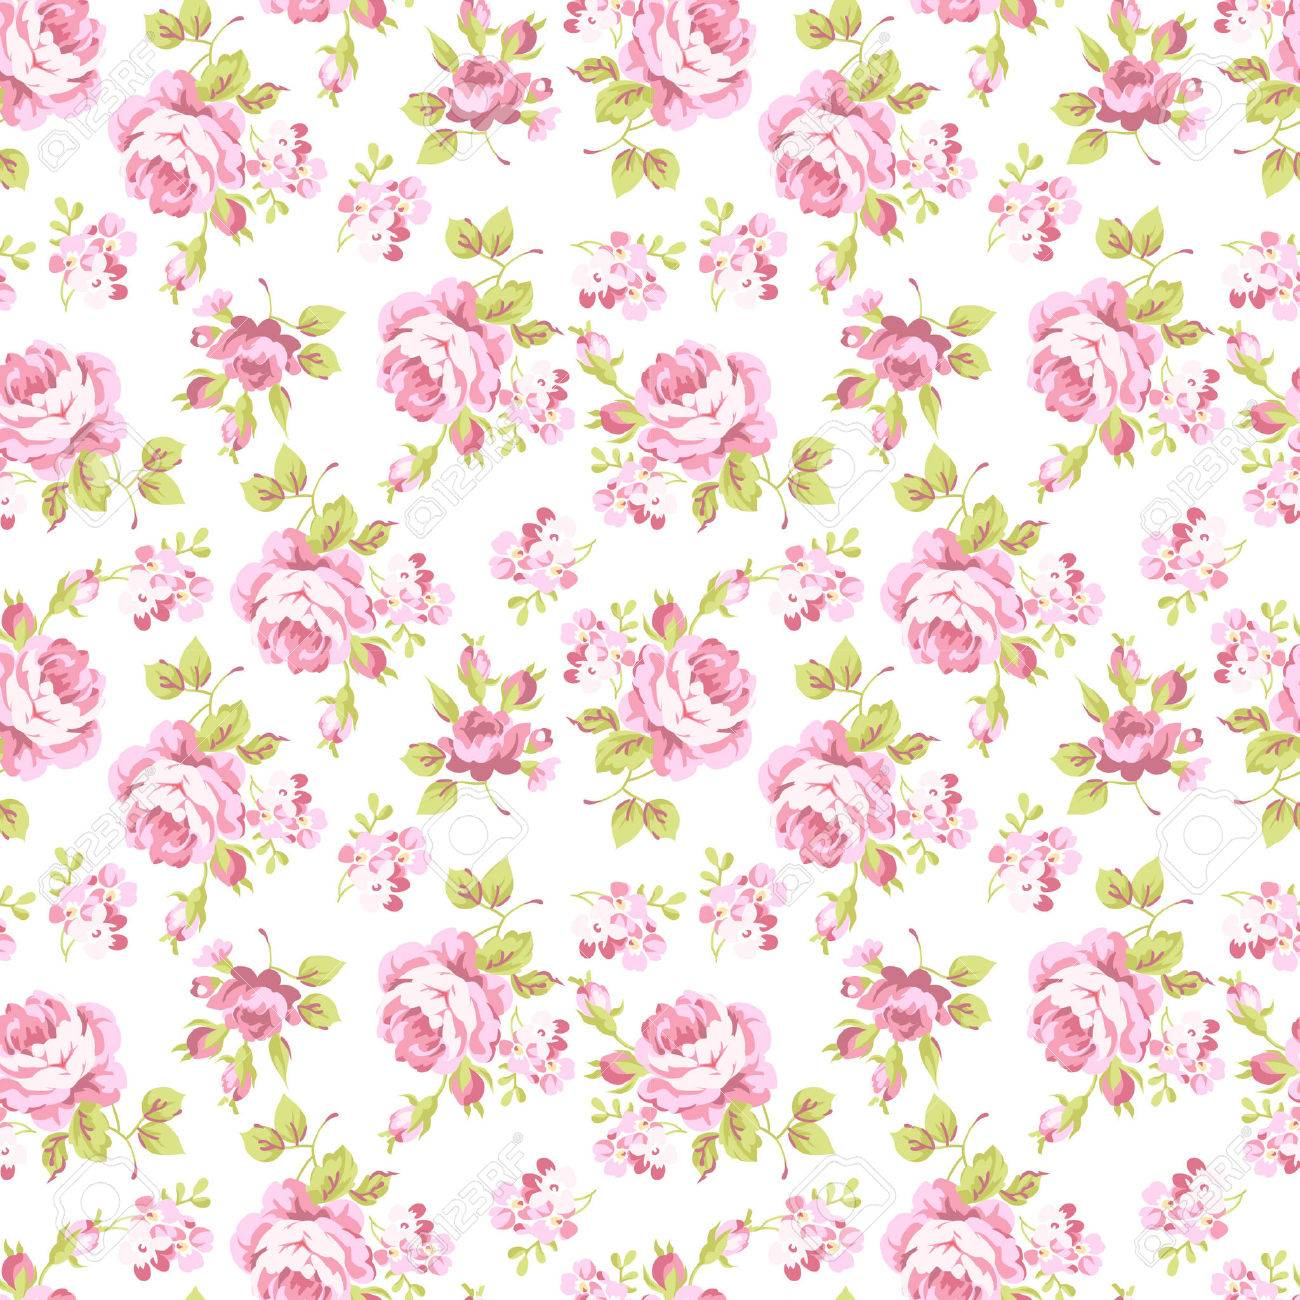 e5868547b15b Seamless floral pattern with bouquets of pink roses Stock Vector - 49445128